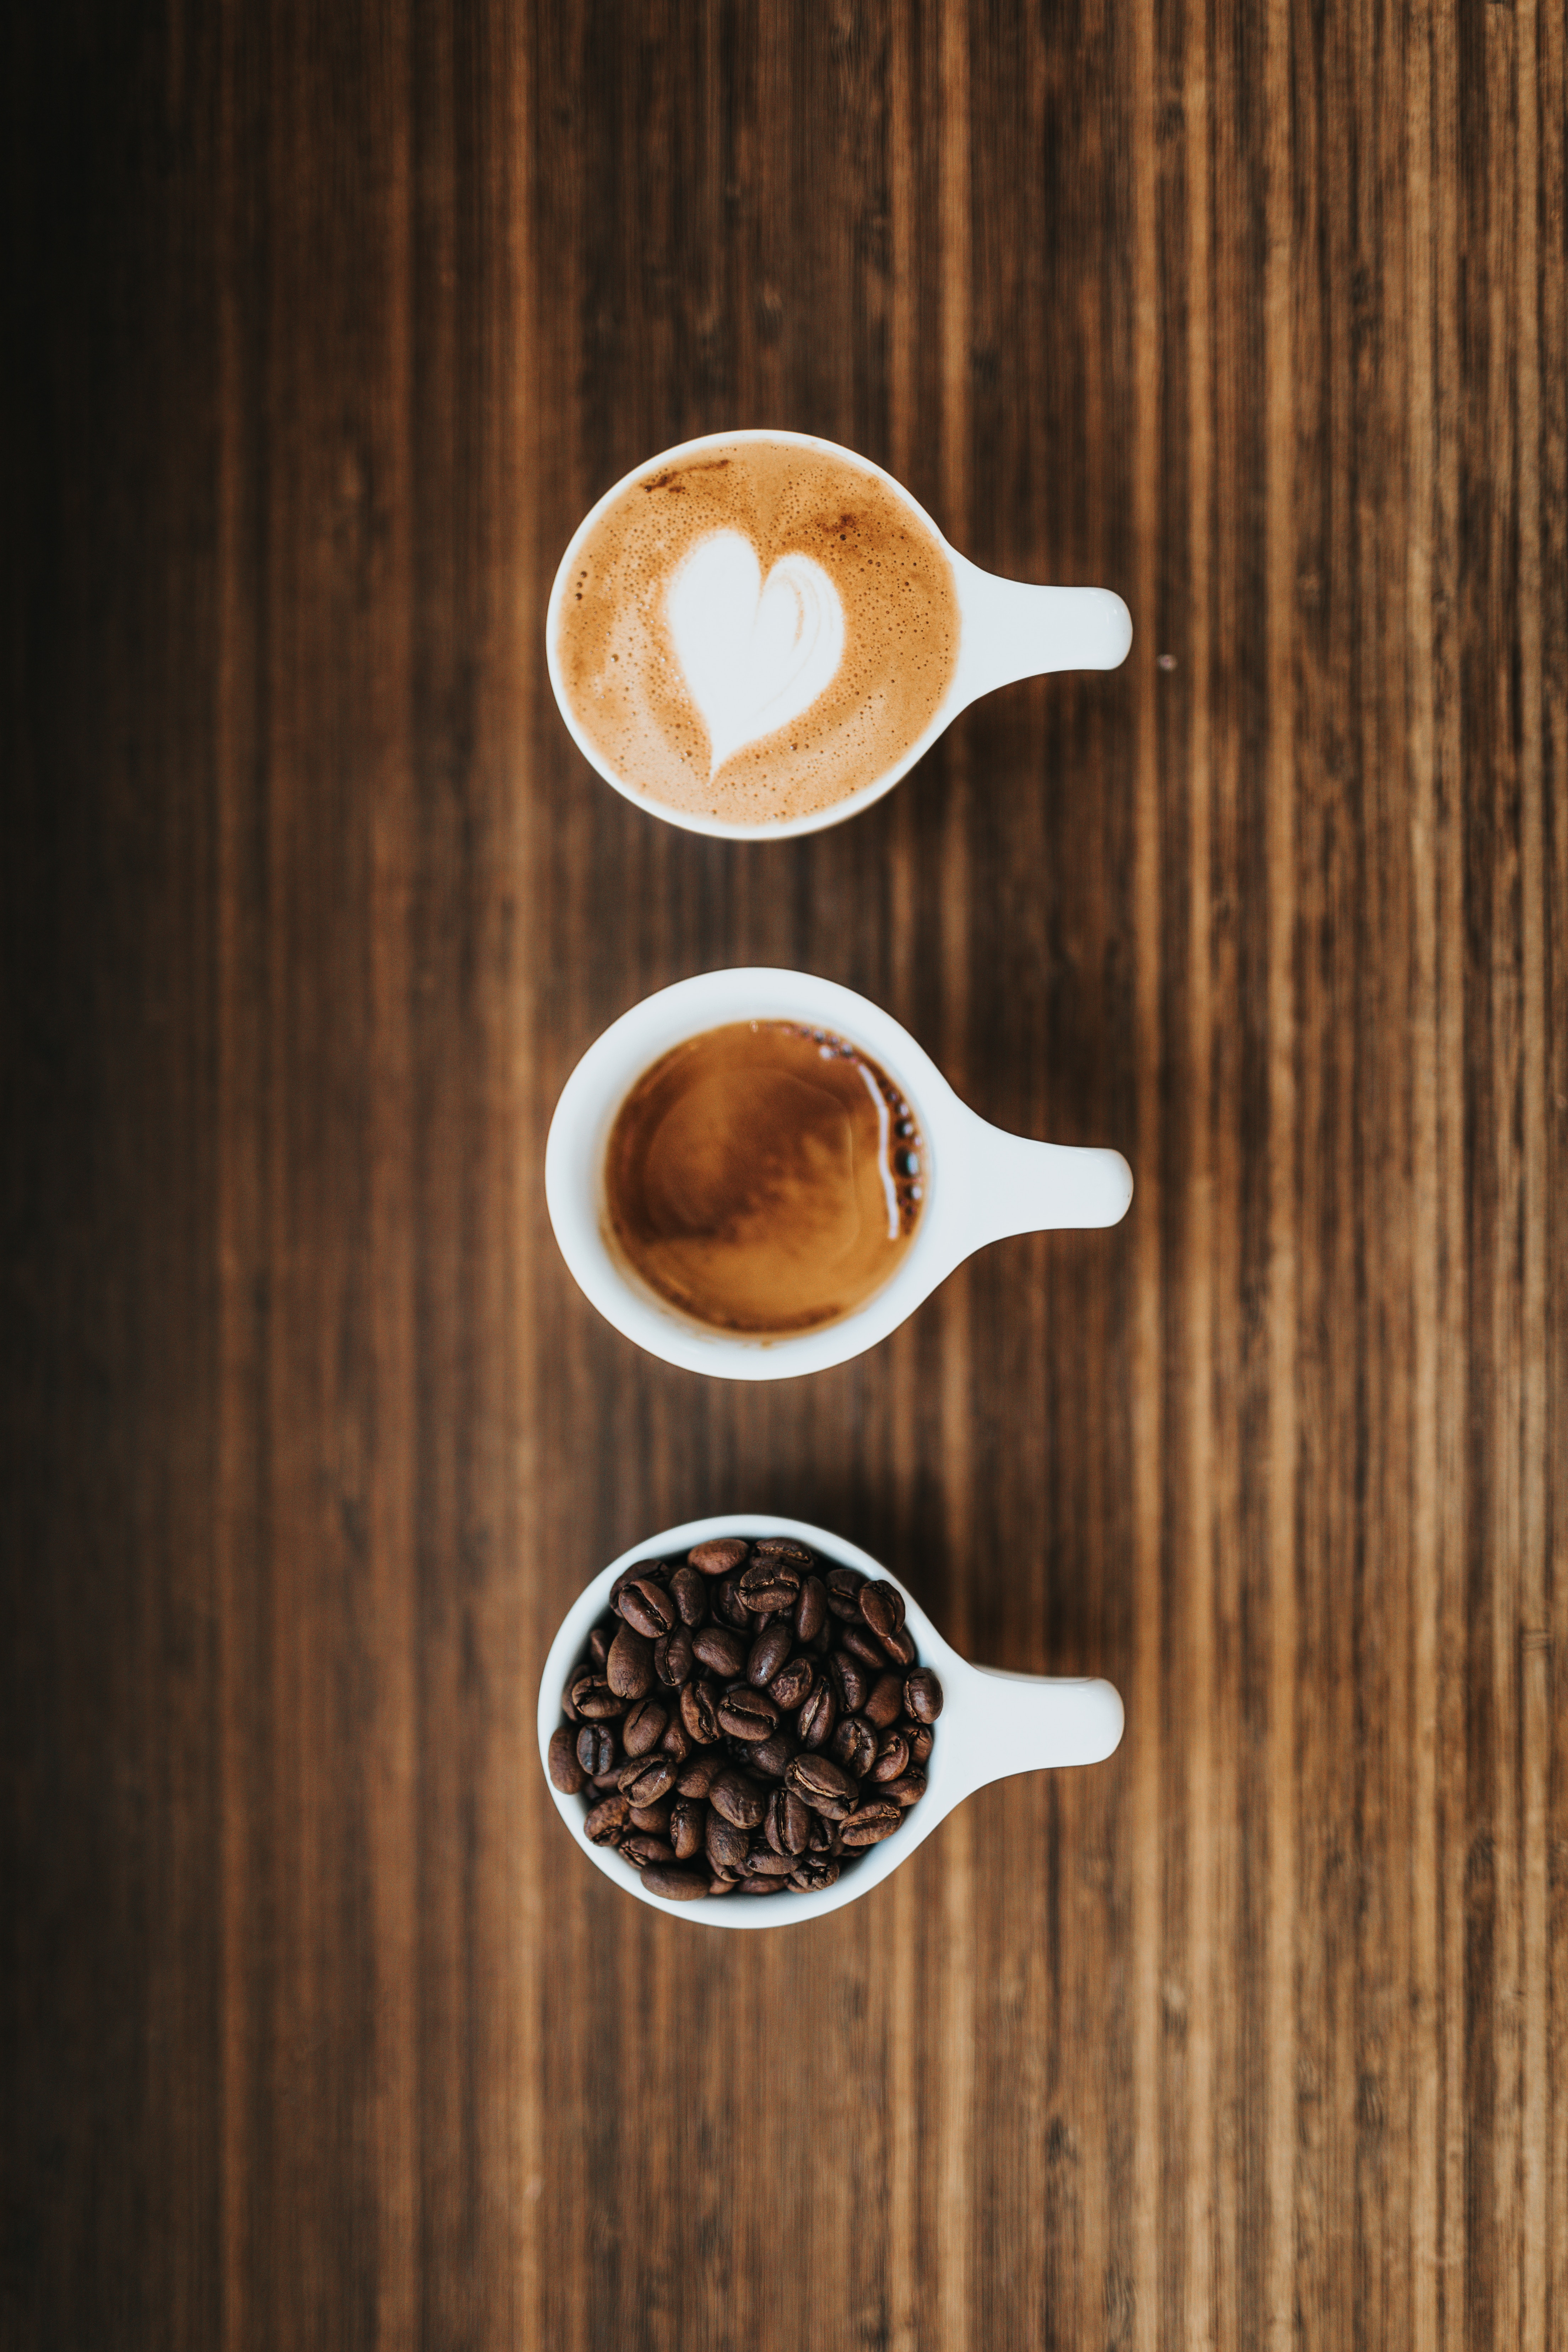 Could coffee be the secret to building a strong team?